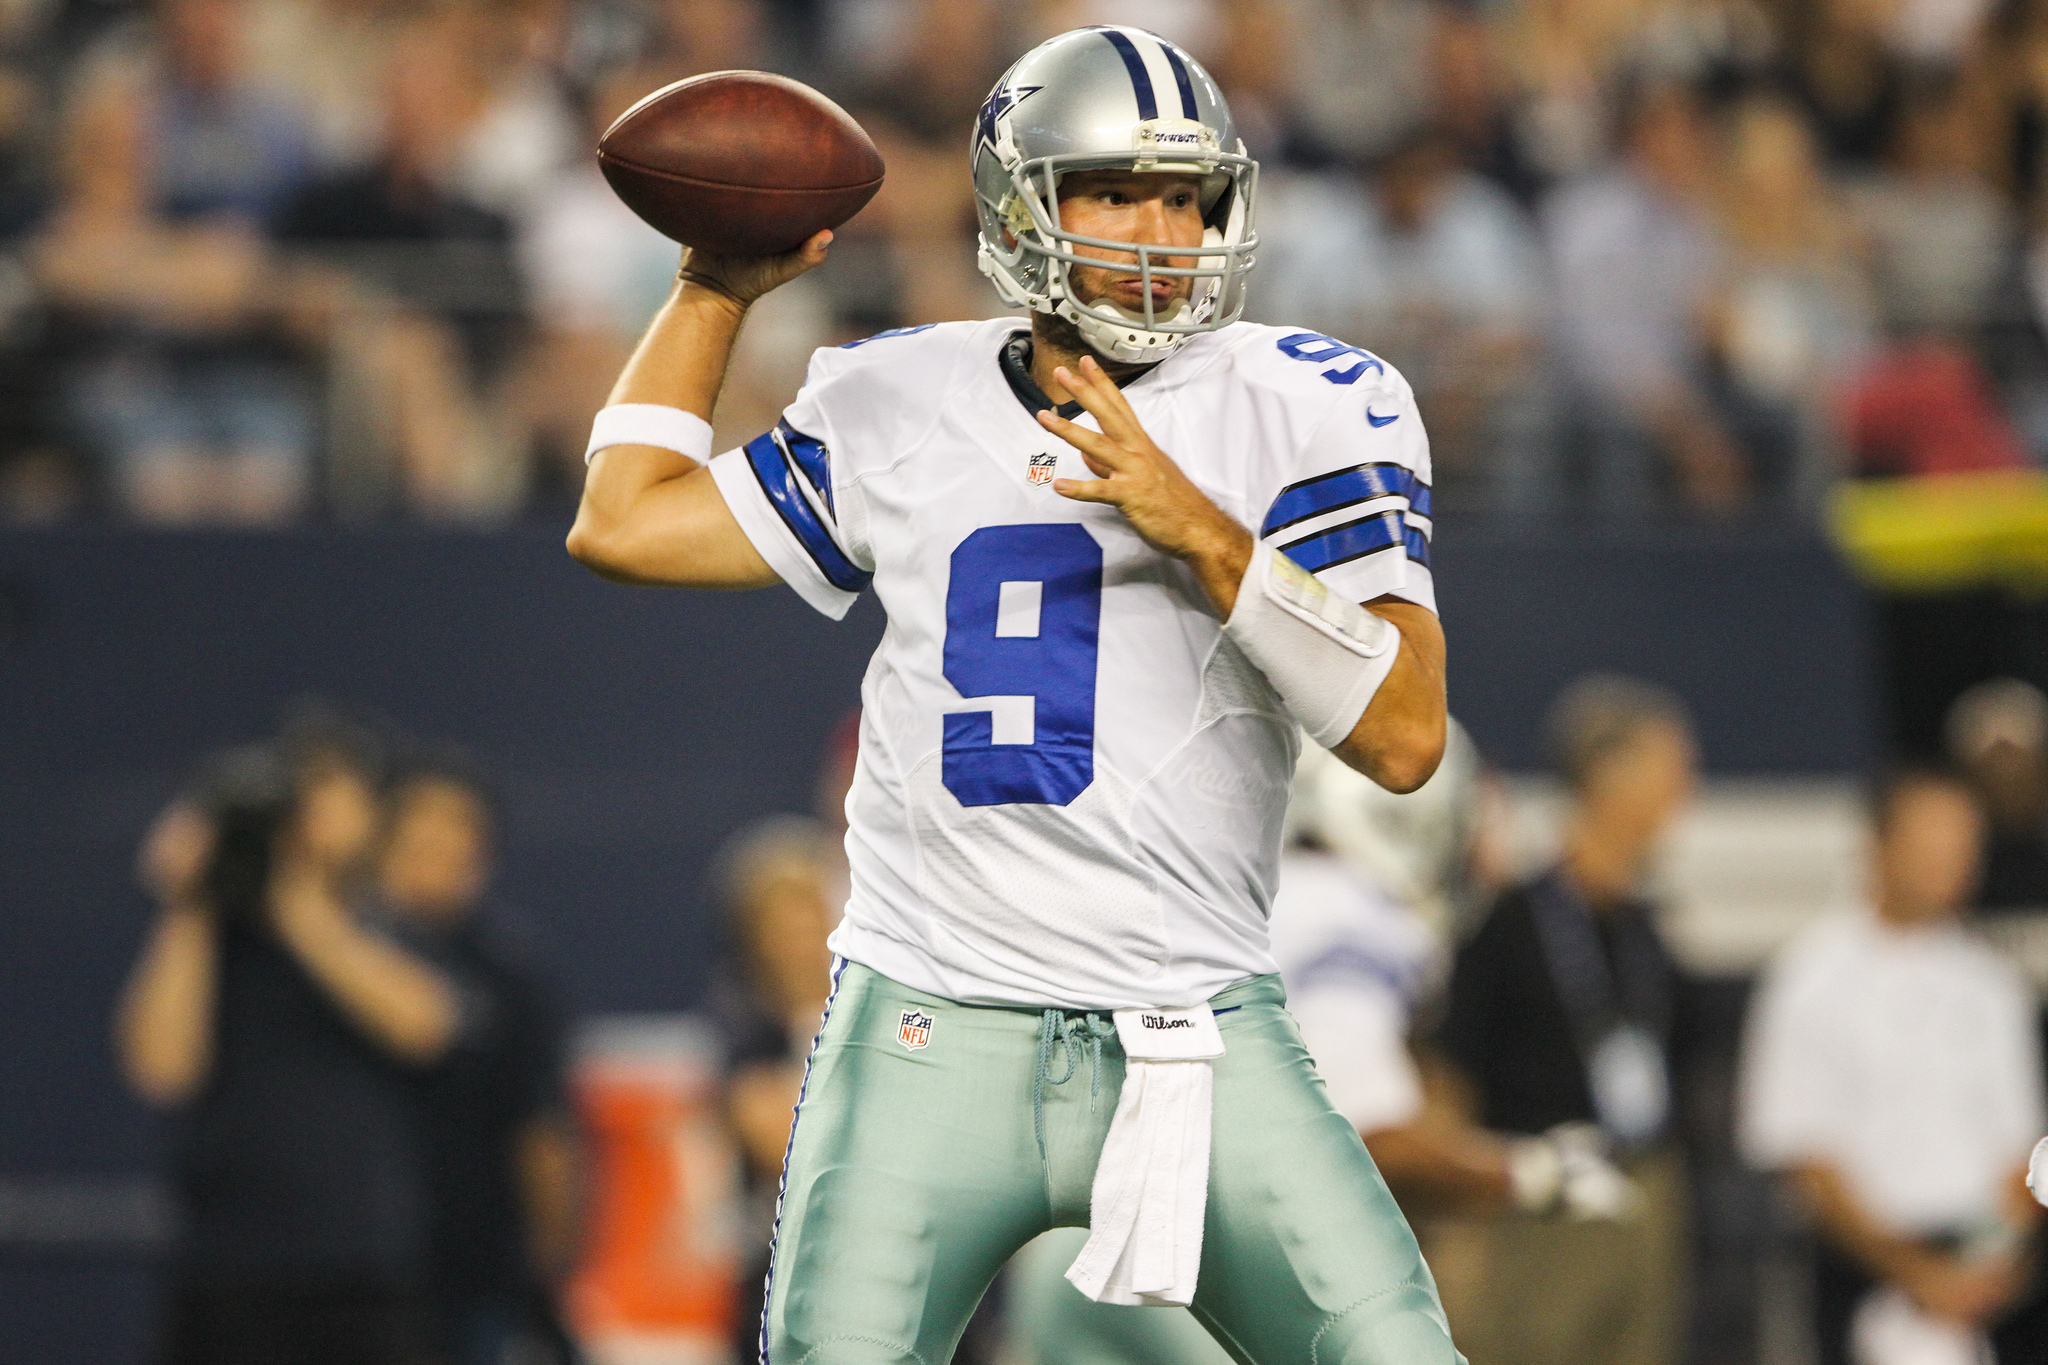 Cowboys QB Tony Romo makes his return from injury this Sunday against the Miami Dolphins in a must win game. Photo Courtesy: Darryl Briggs